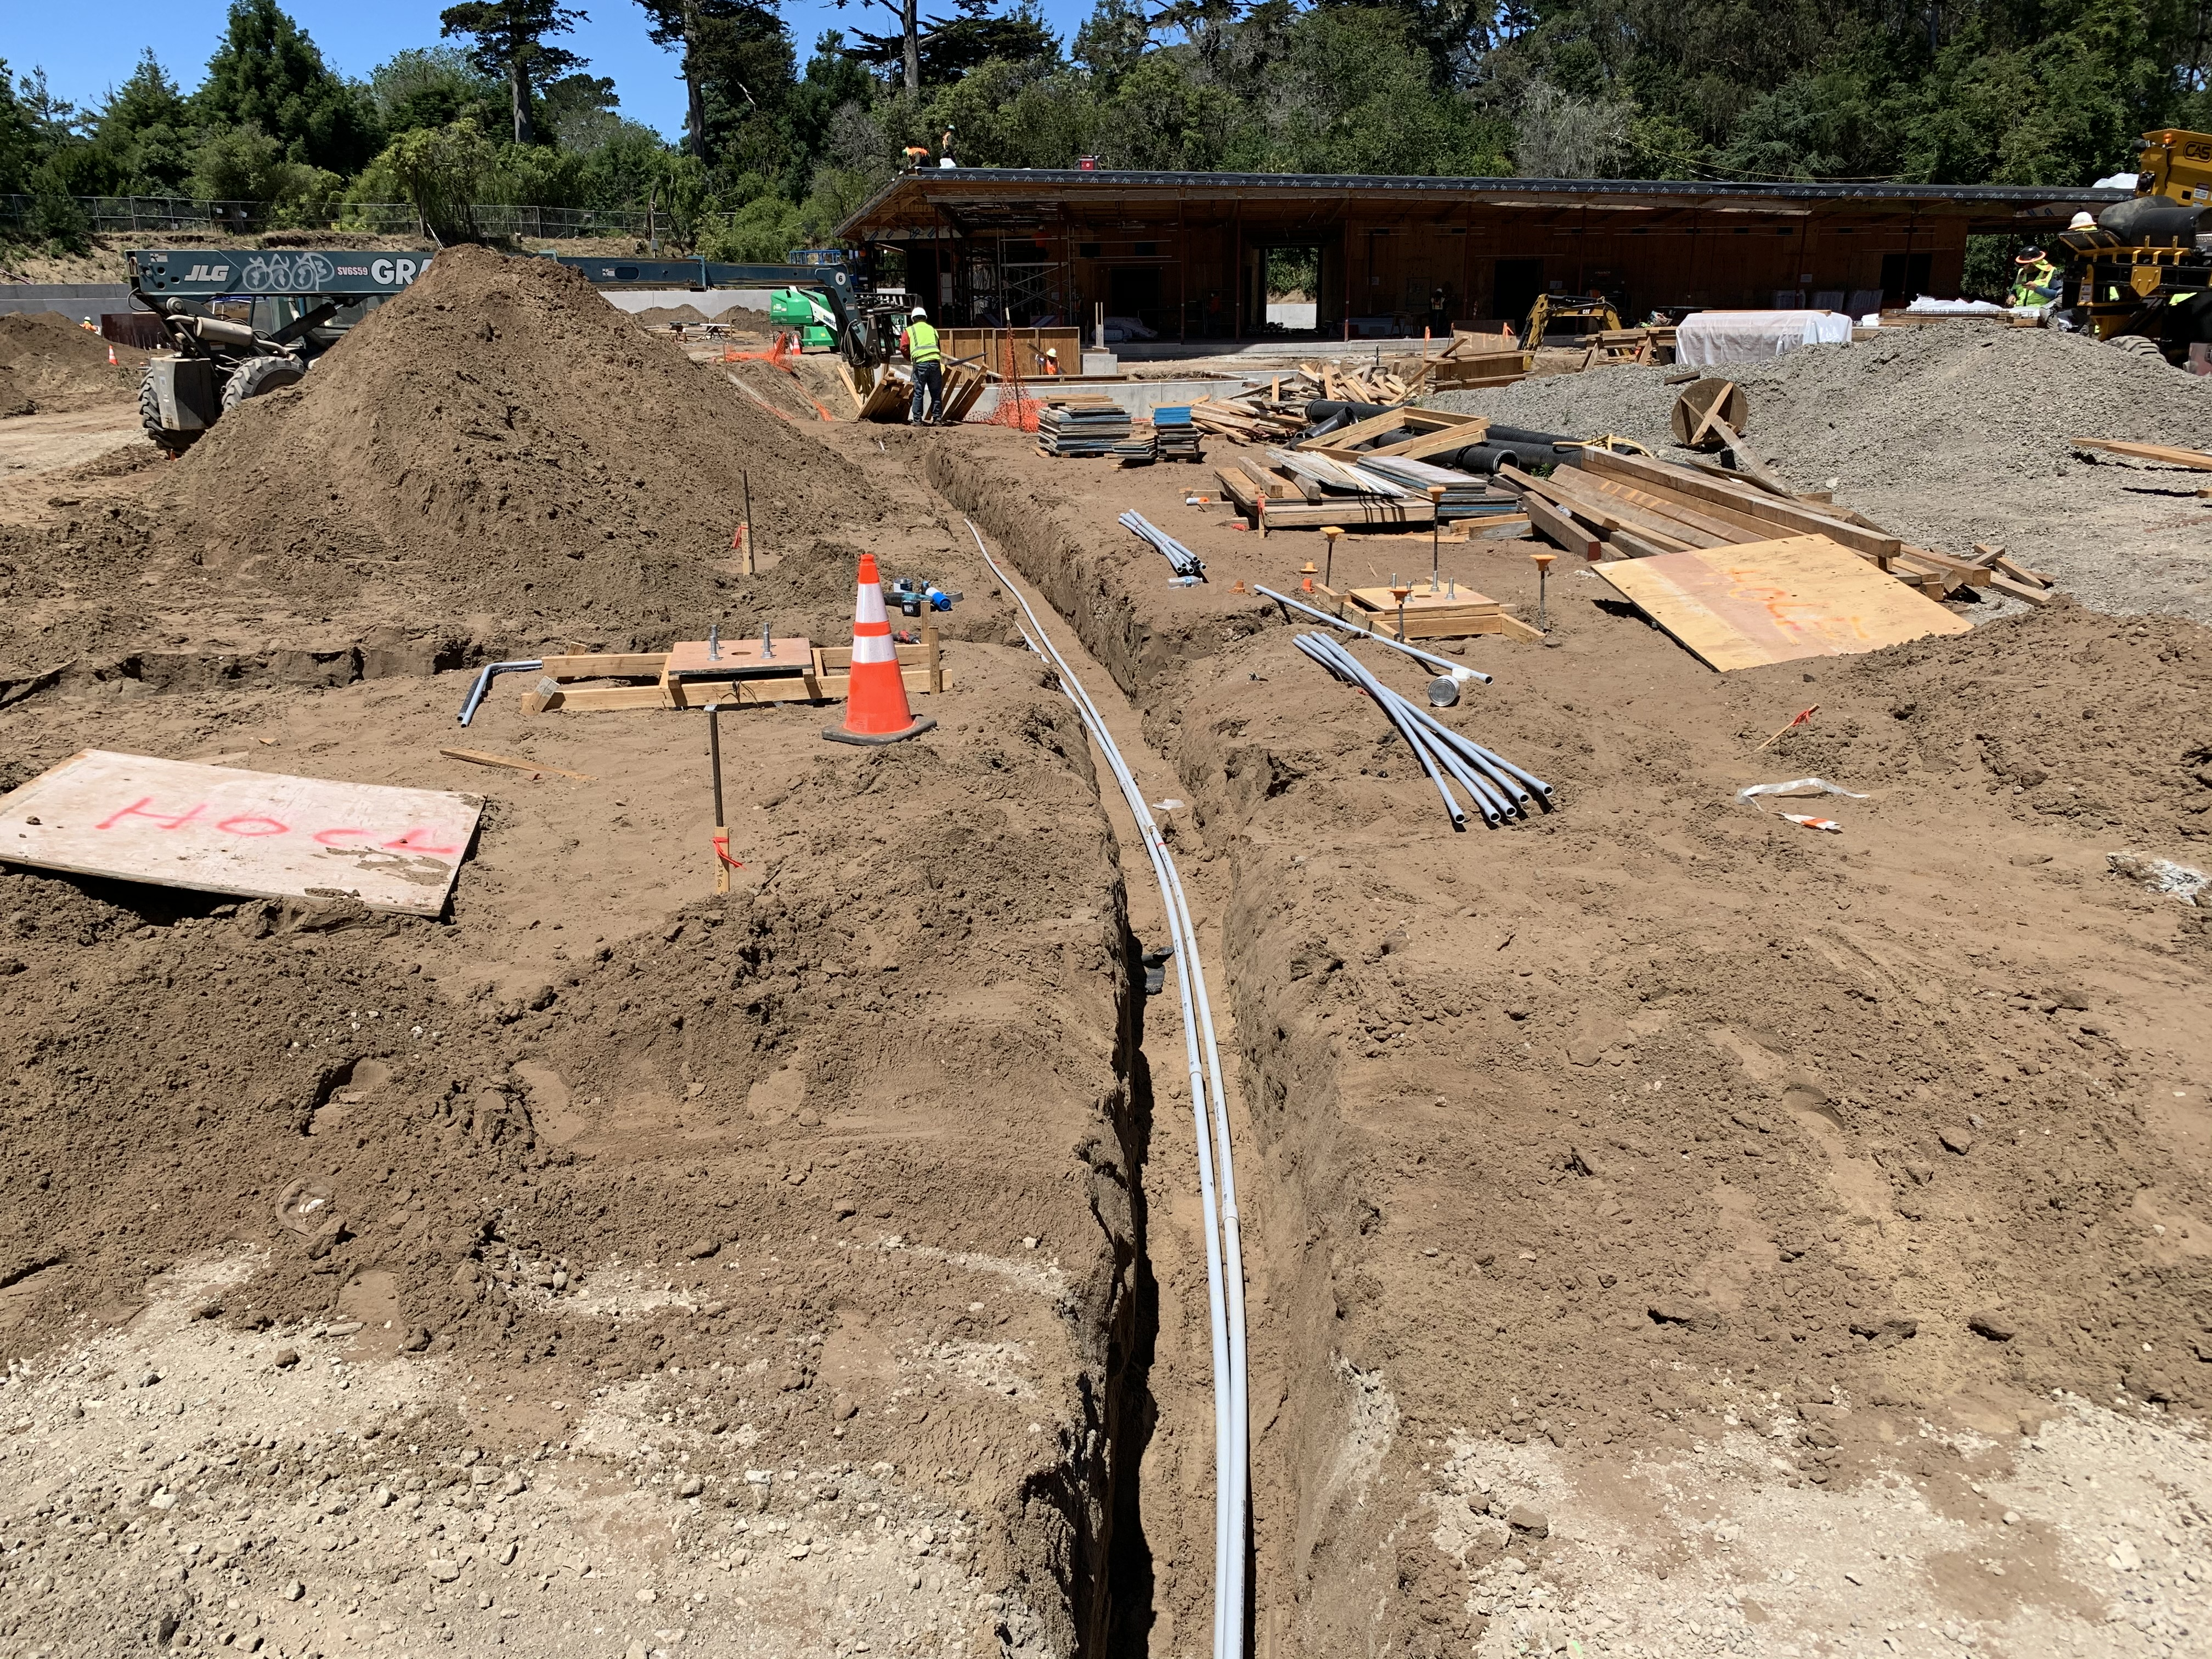 Golden Gate Park Tennis Center Construction June 2020 5